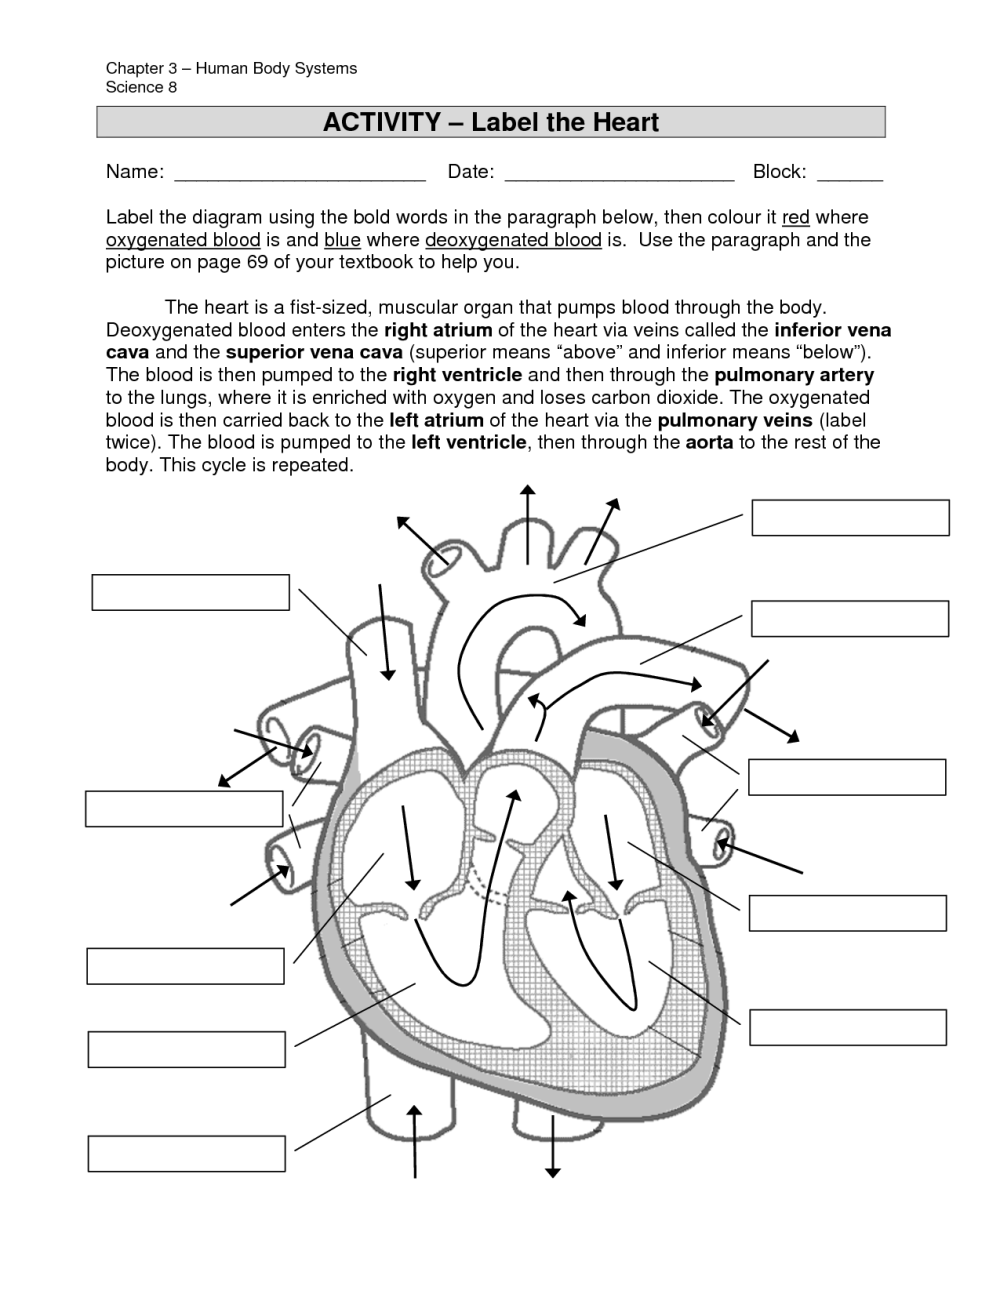 medium resolution of heart diagram to label printable free download heart diagram without labels heart diagram without labels human heart diagram no labels human heart diagram